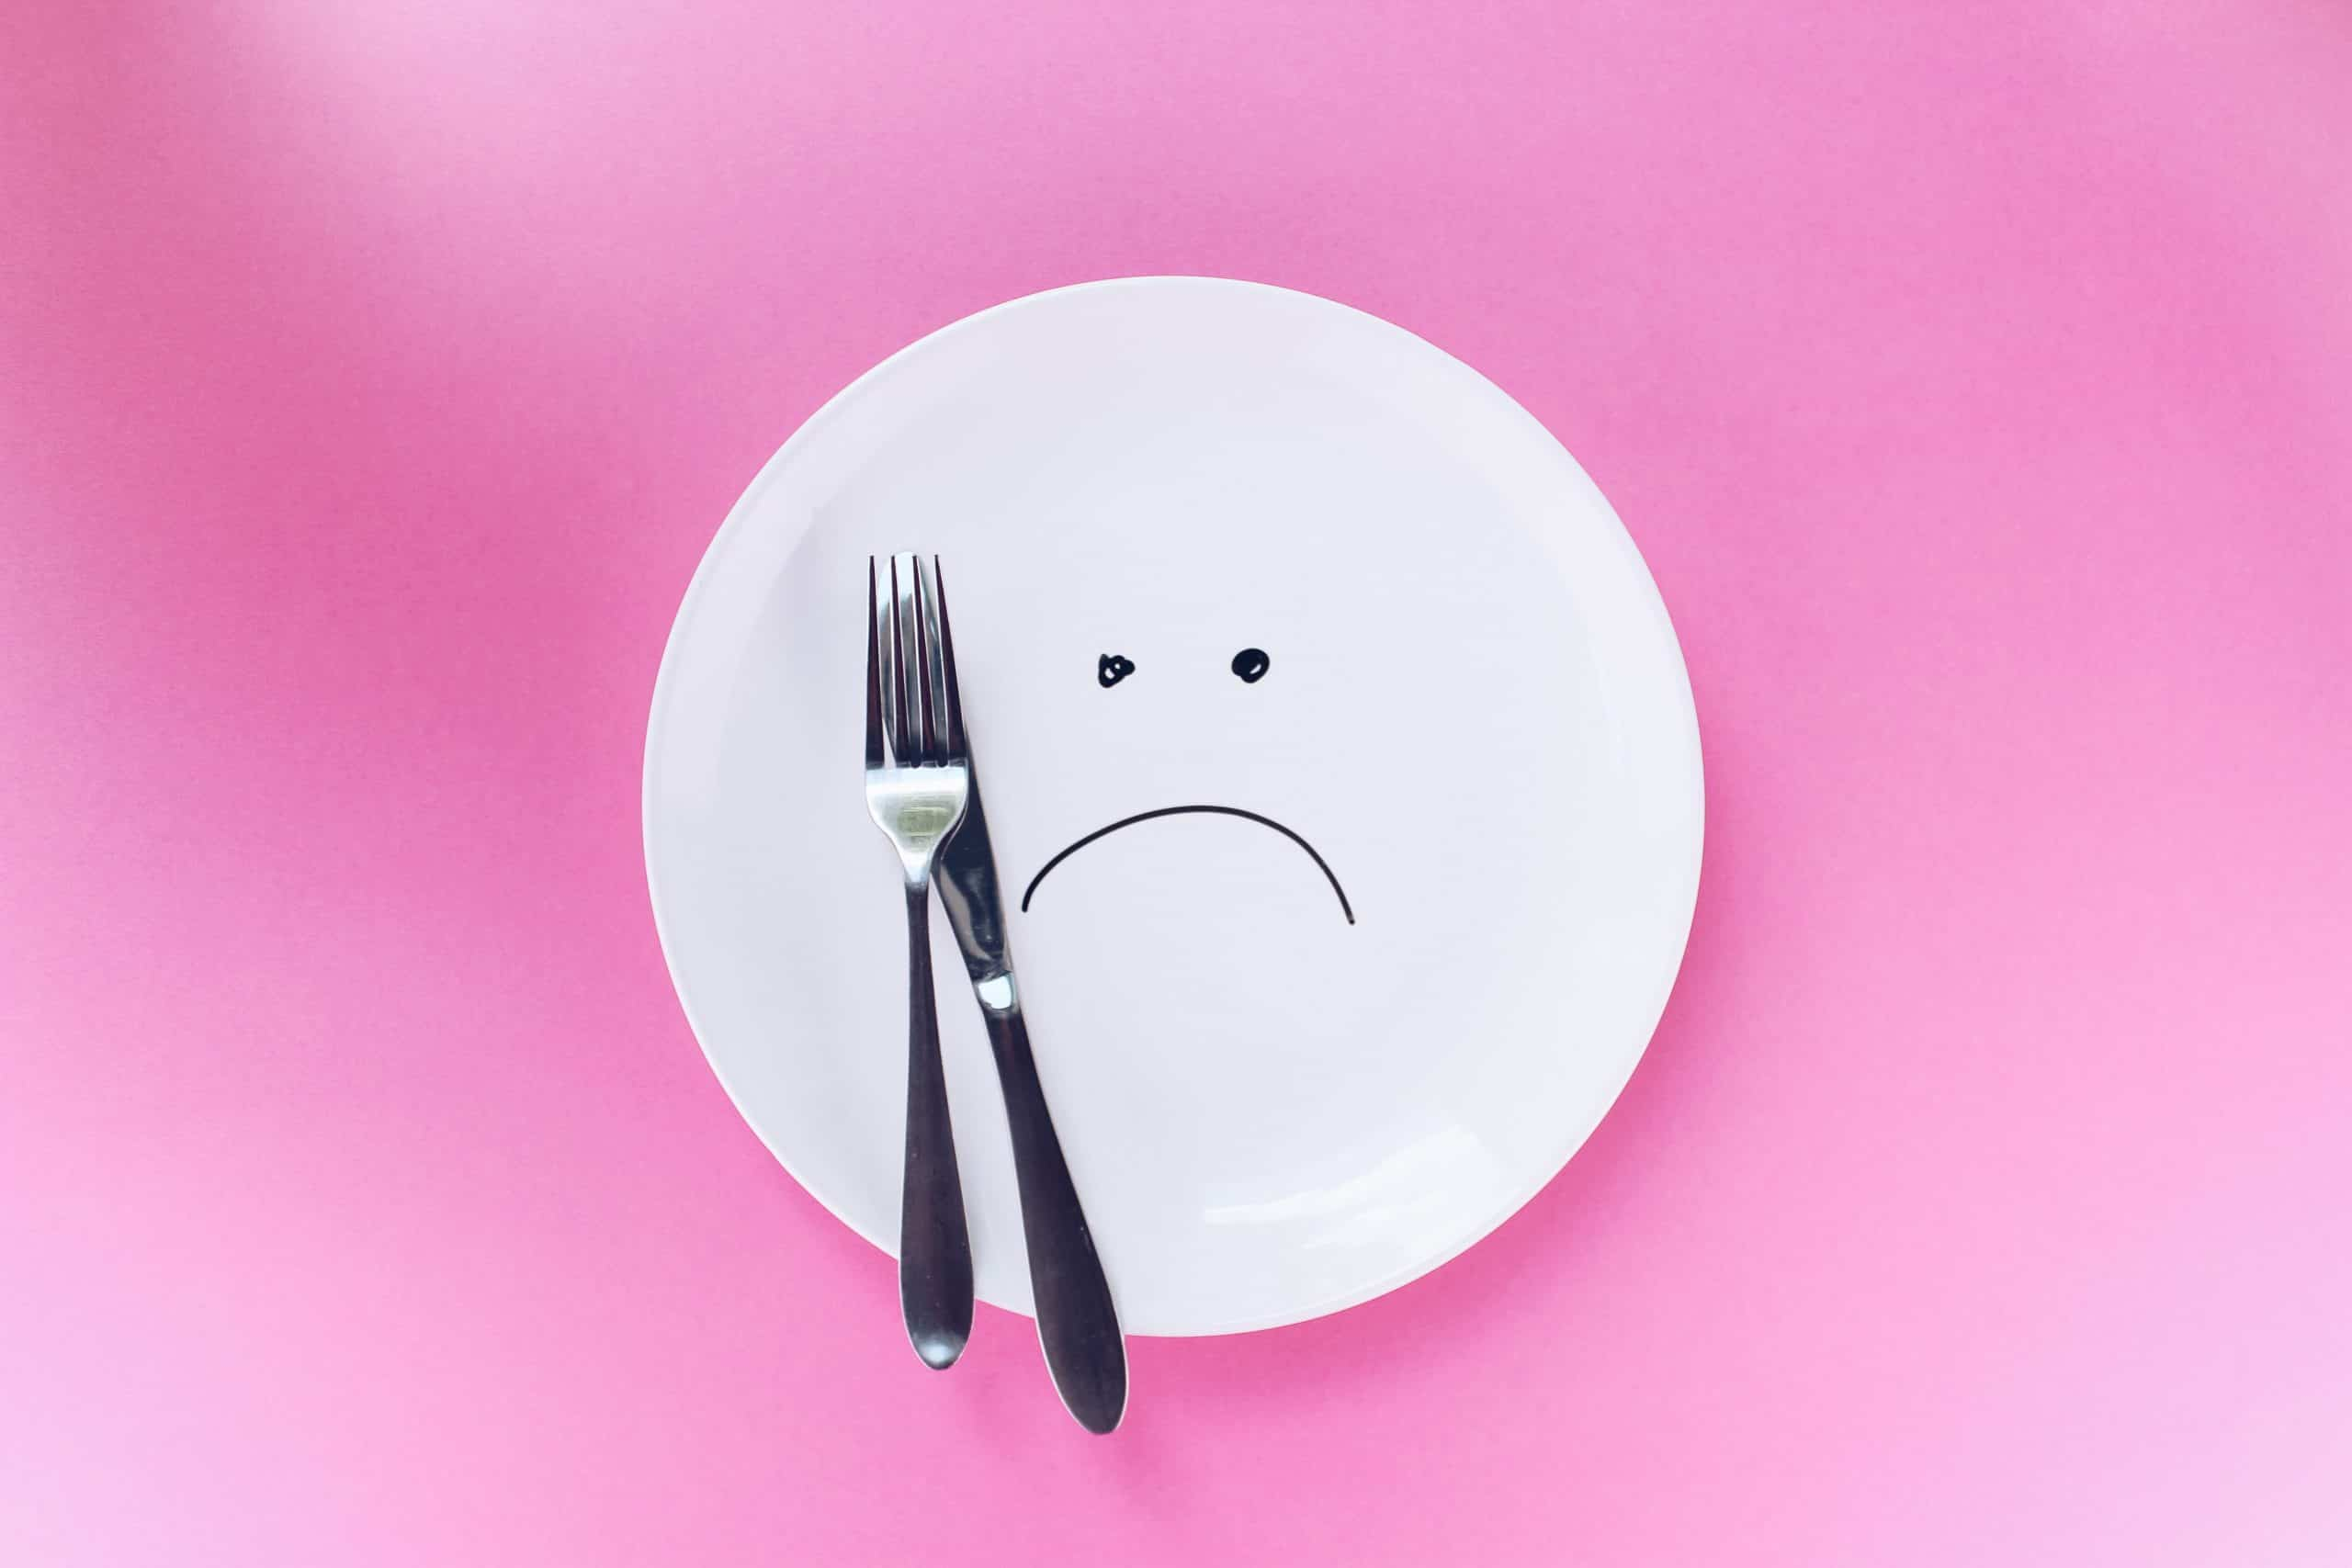 Sad face on plate is how we feel about the fad diet that is the keto diet